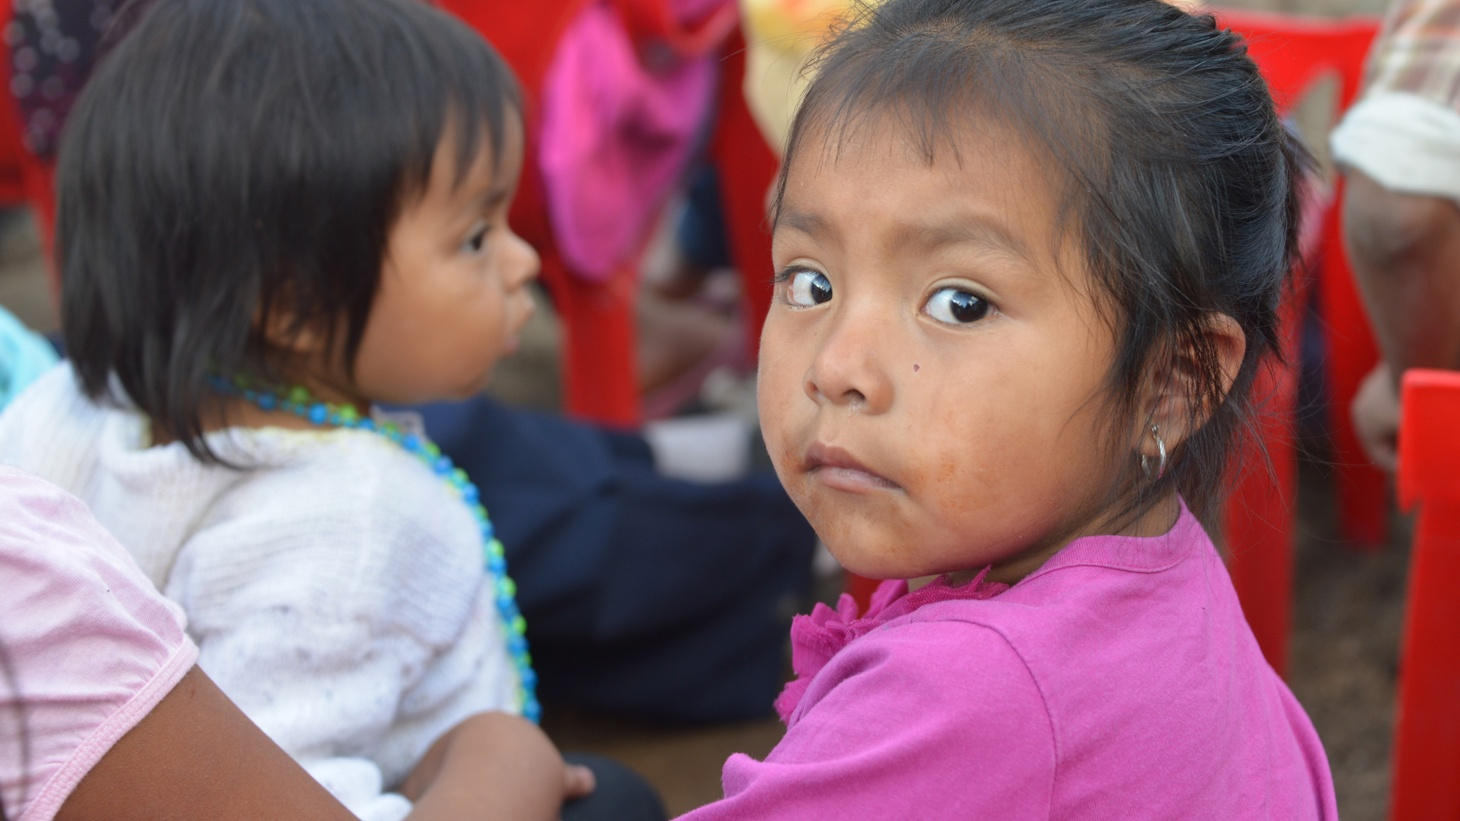 It's been a year since President Obama promised a safe path to the United States for thousands of children in Central America—as long as they have parents who are legally in this country. But not a single child has found a way passed bureaucratic obstacles, and thousands are still facing mortal danger at home. Is the US breaking a promise to children at risk?